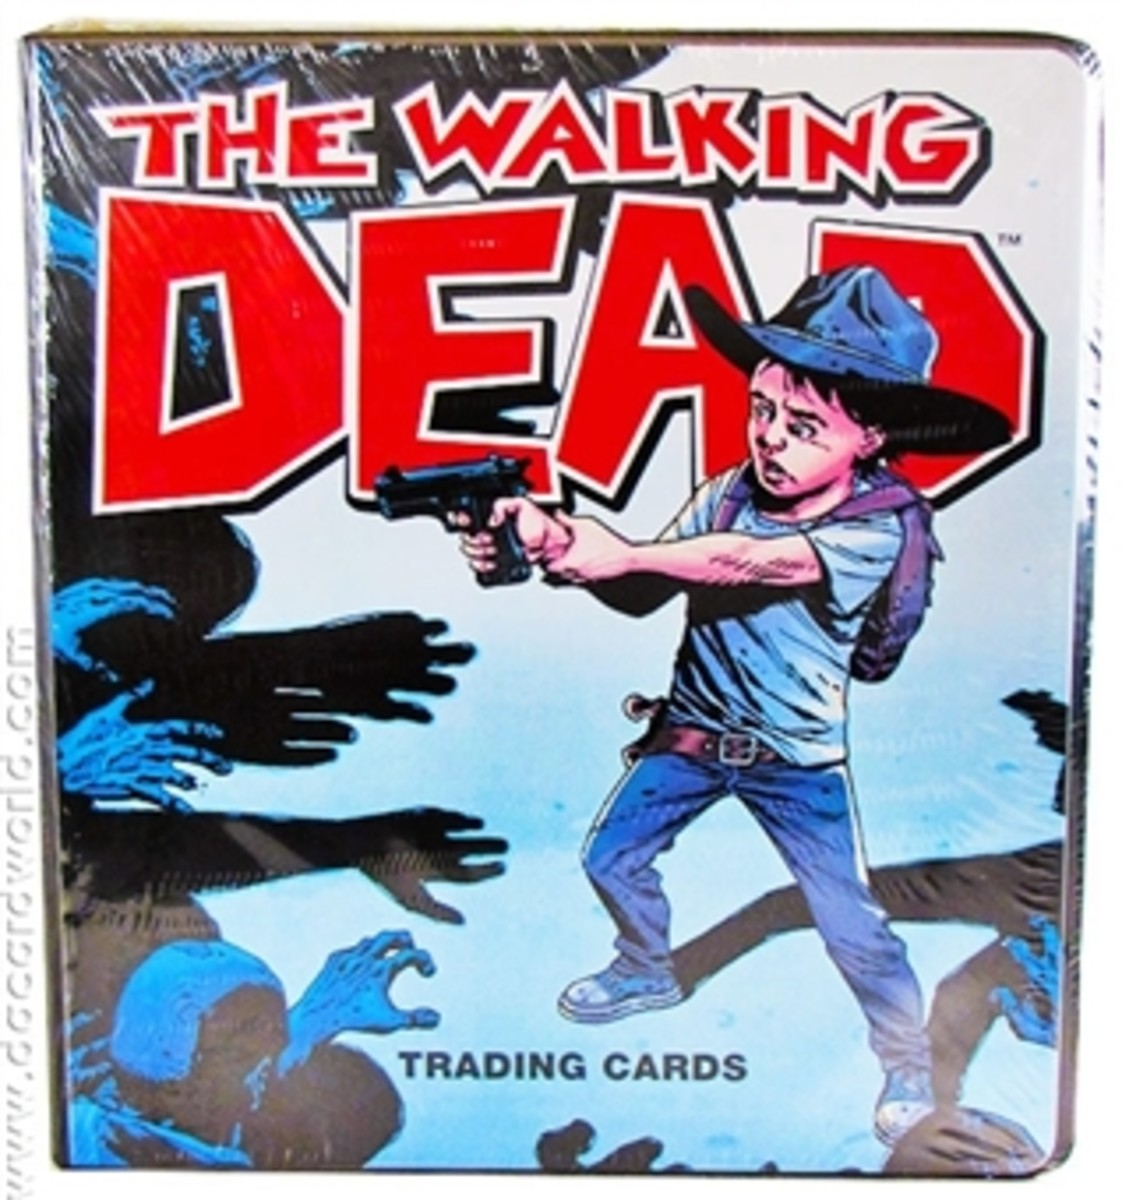 Rare Walking Dead Comic Trading Cards Carl Grimes Binder